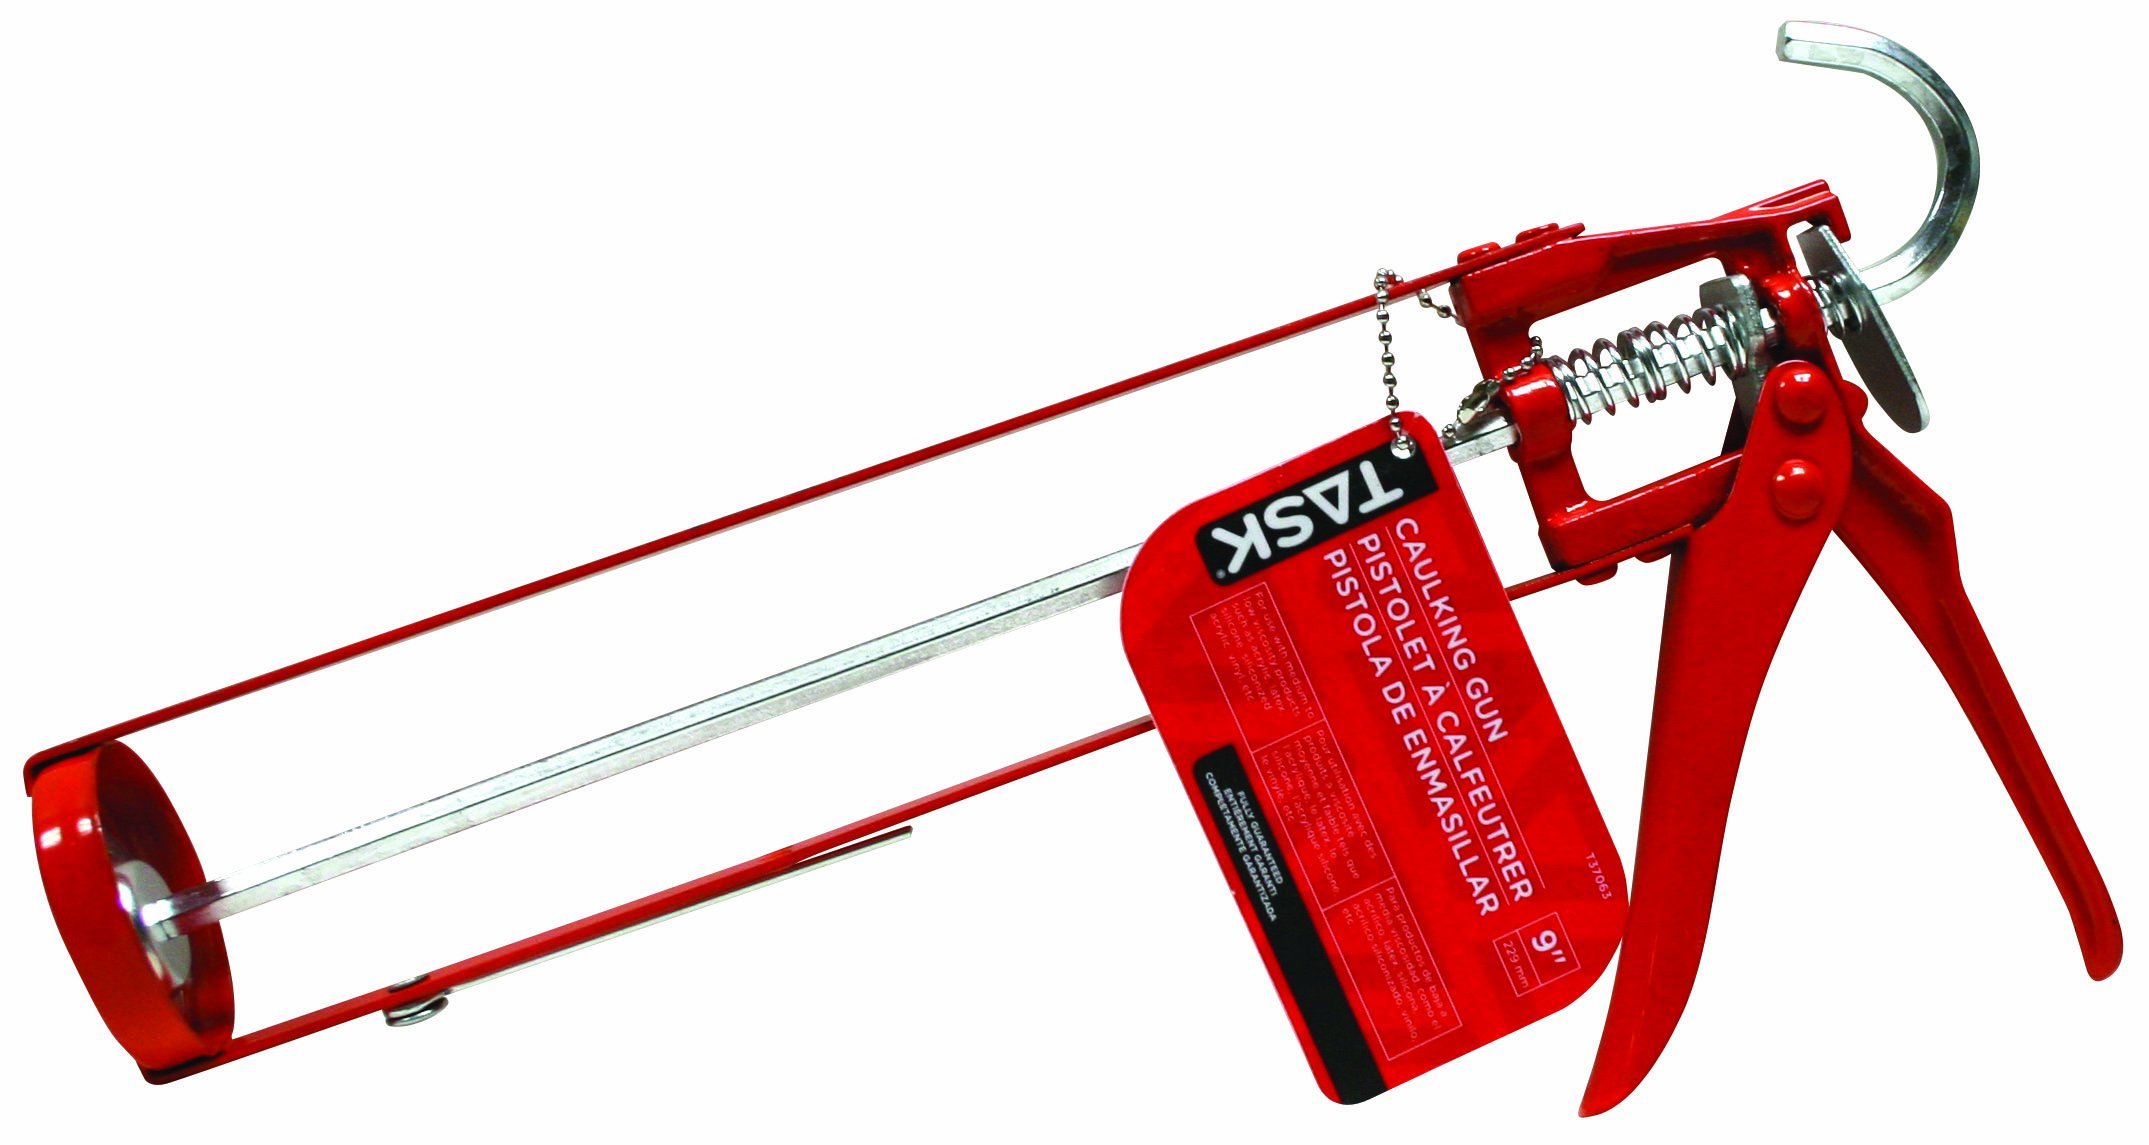 Task Tools T37063 9-Inch Light-Duty Skeleton Caulking Gun by Task Tools